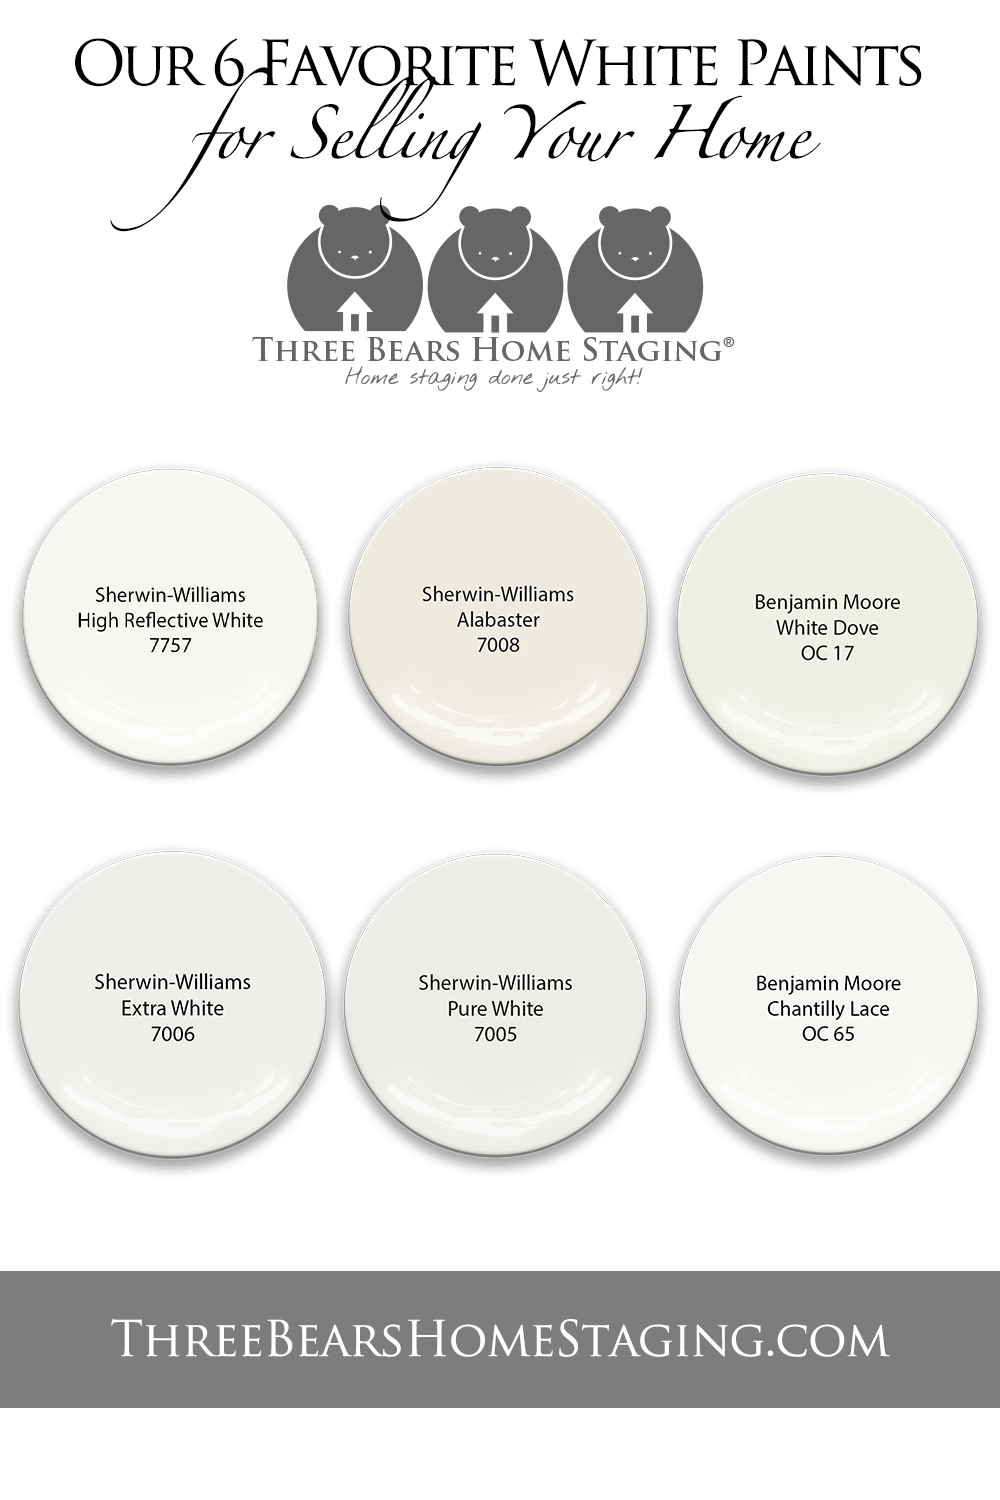 Our 6 Favorite White Paints For Selling Your Home